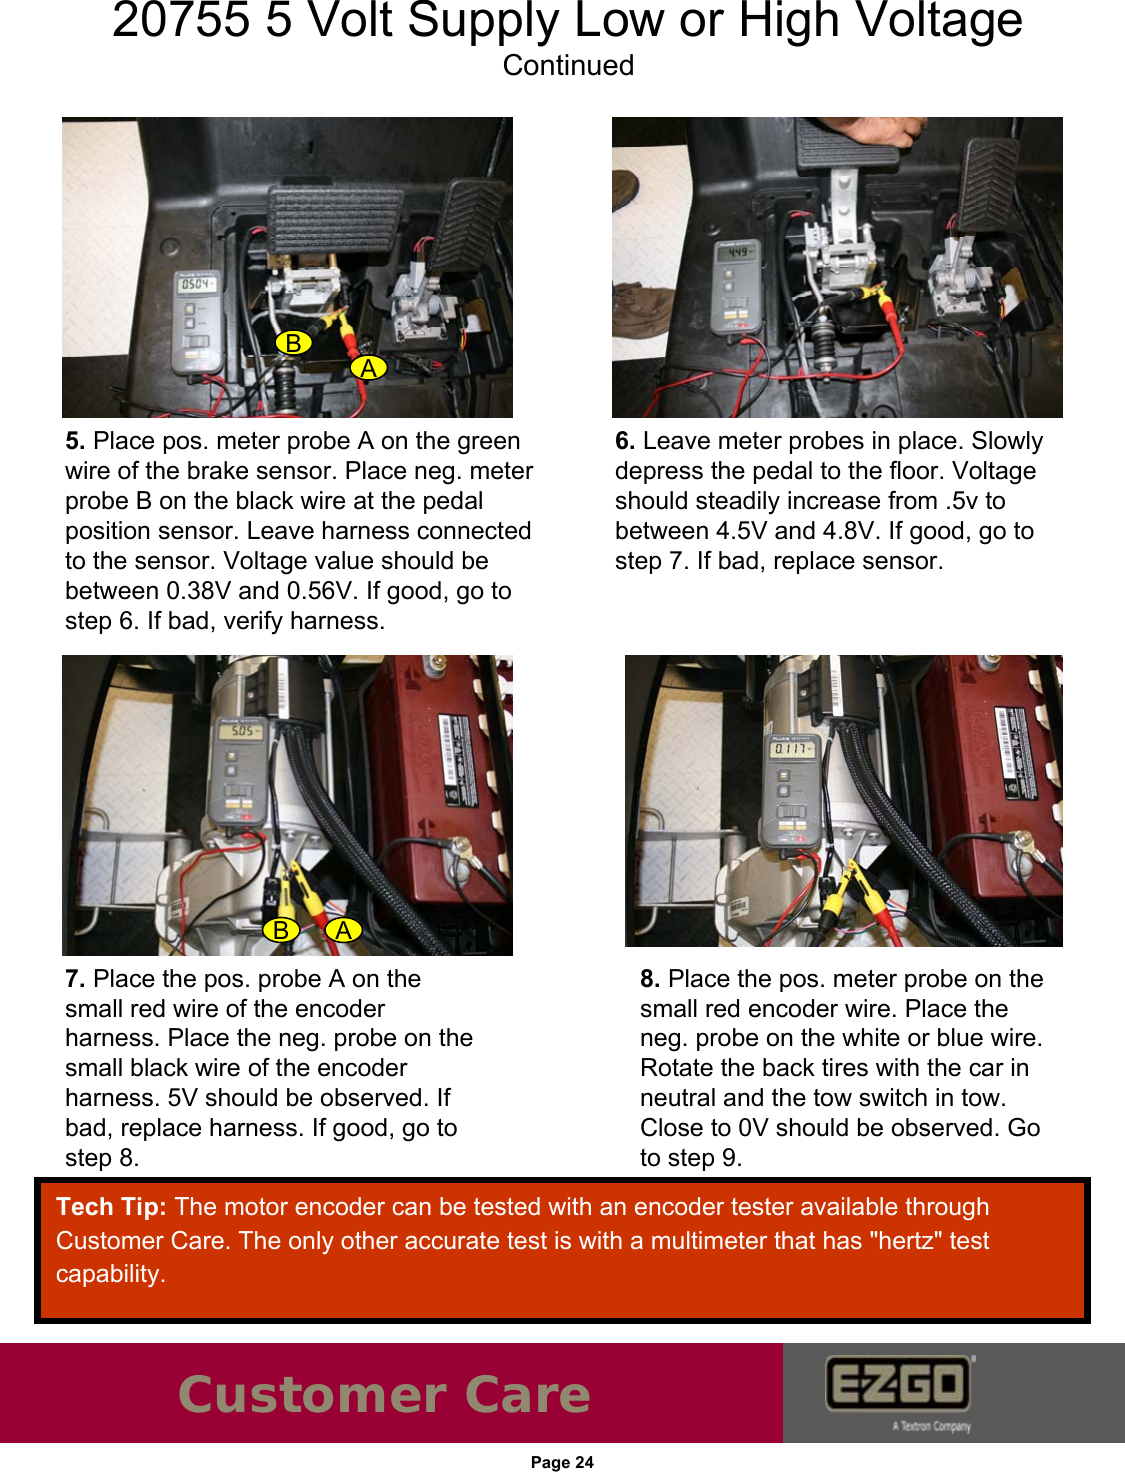 Ezgo RXV Danaher Codes T Shoot Guide 2 Danaher Encoders Wiring Diagram on